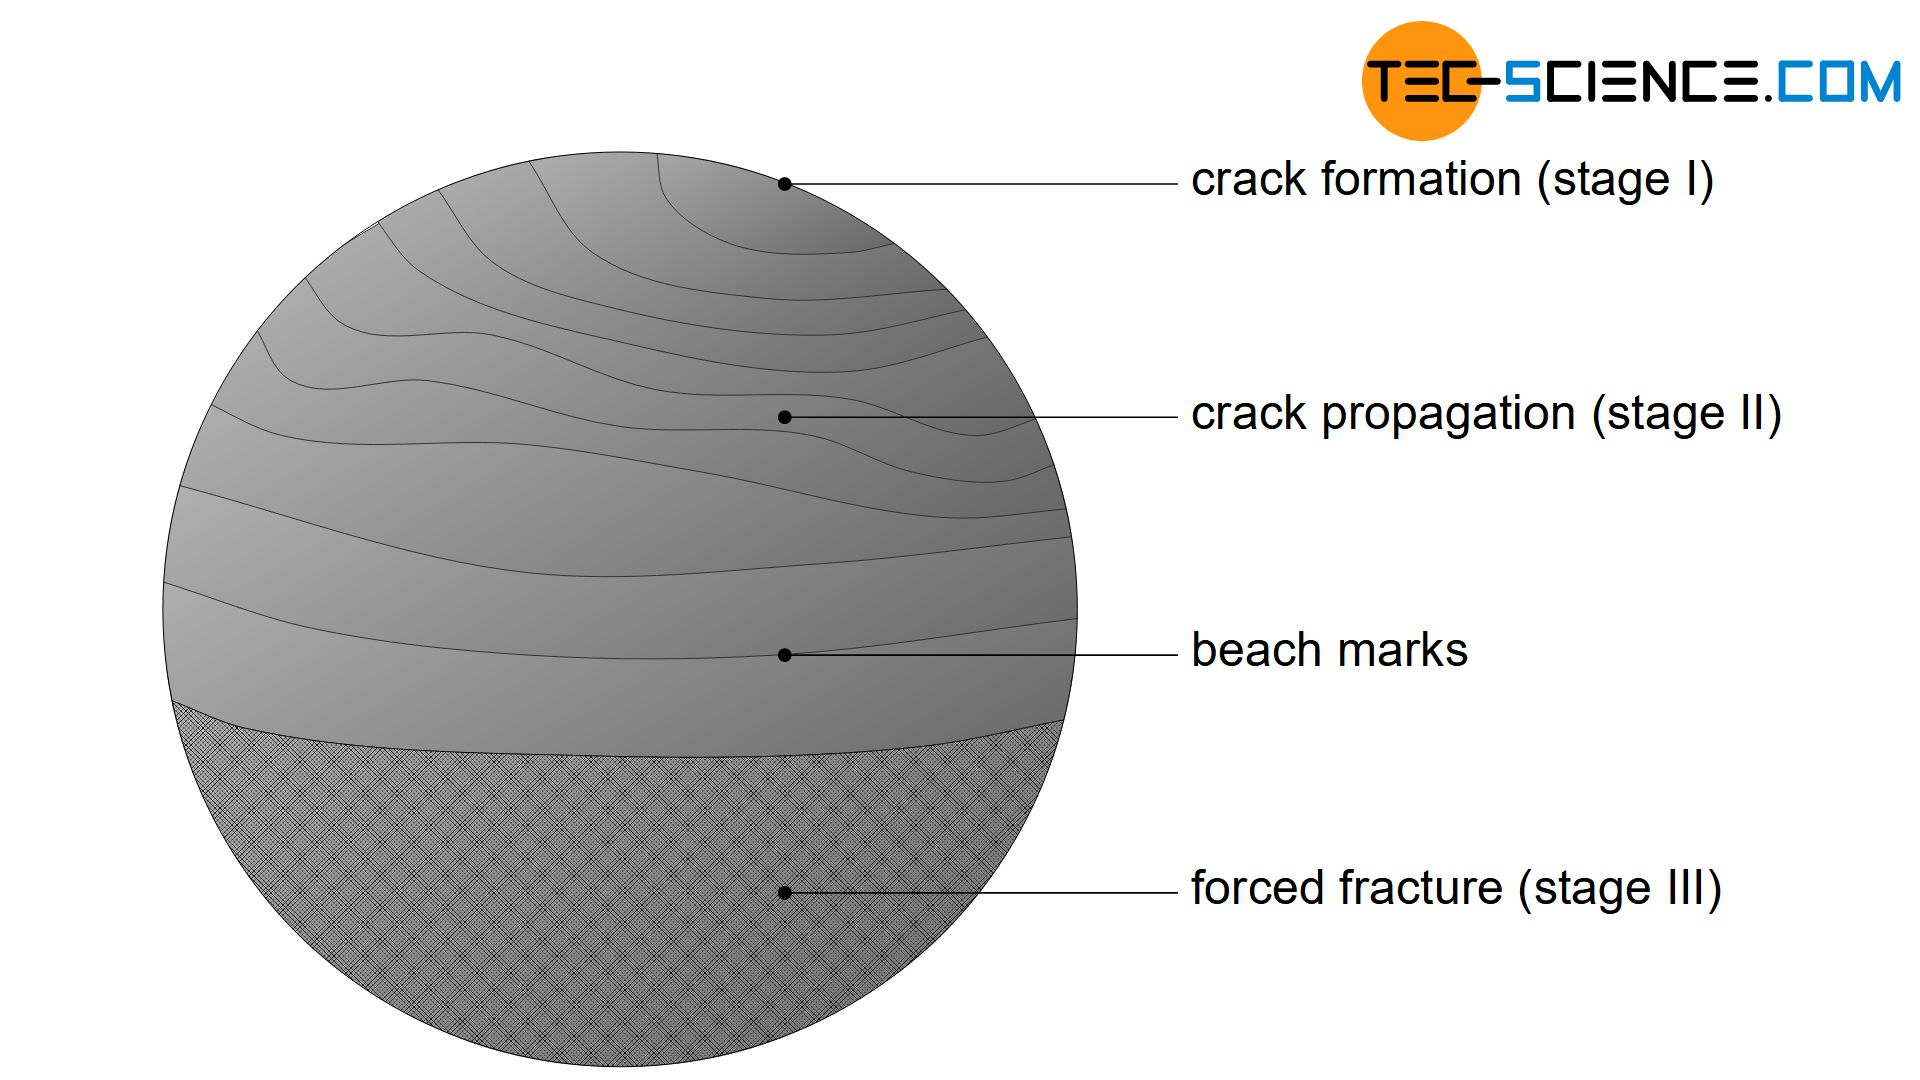 Surface of a fatigue fracture